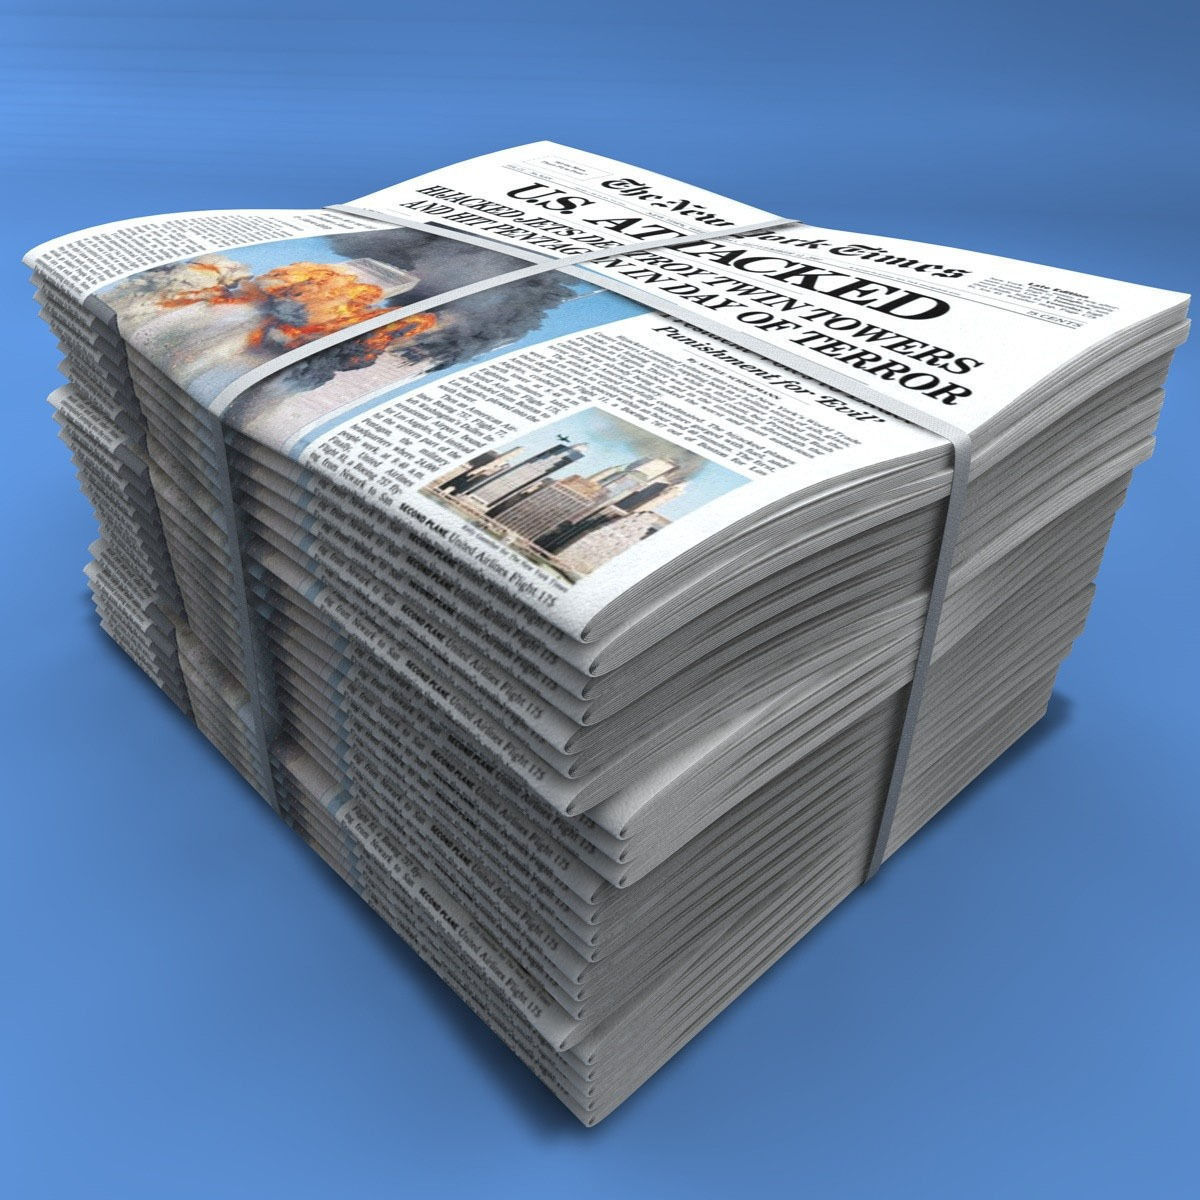 Newspapers | 3D model